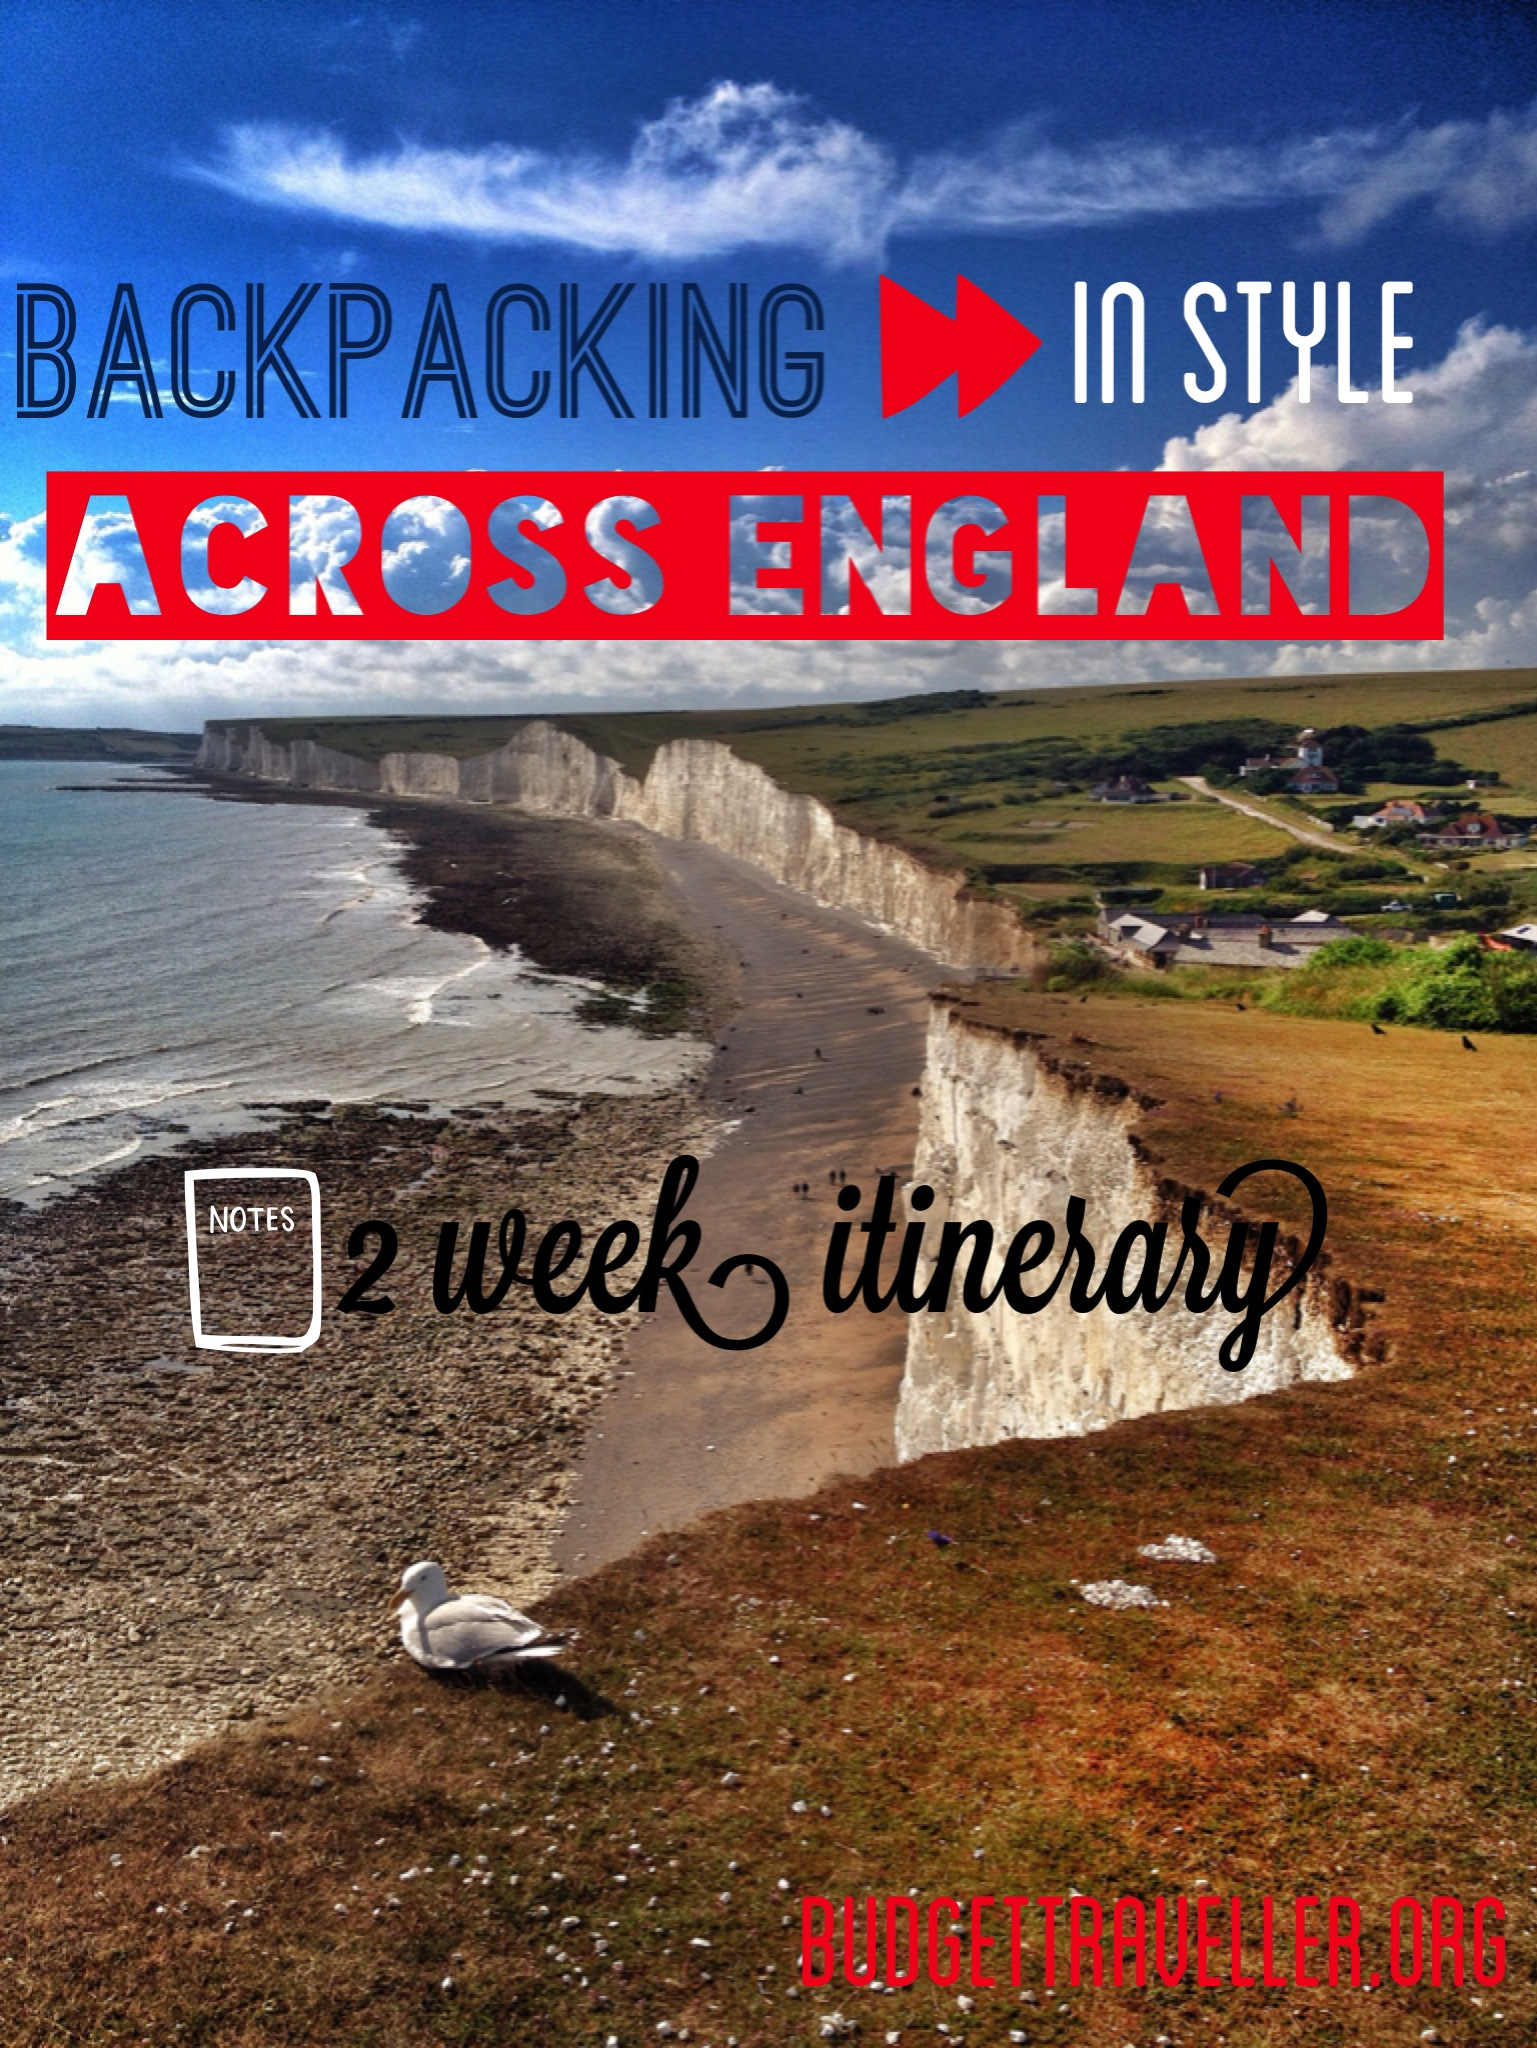 Backpacking in style across England: a 2 week itinerary -